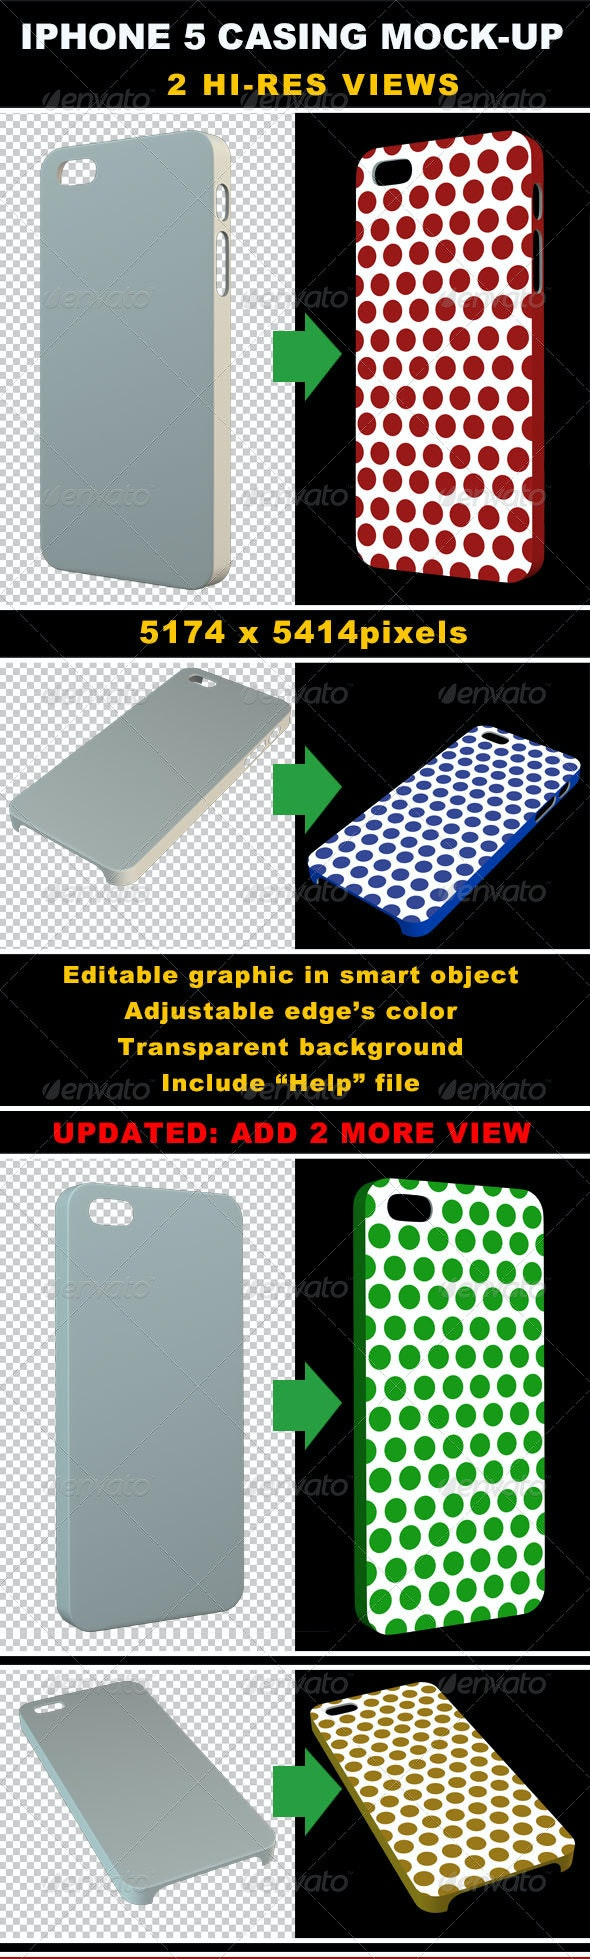 Phone 5 Casing Mock-up - Objects 3D Renders